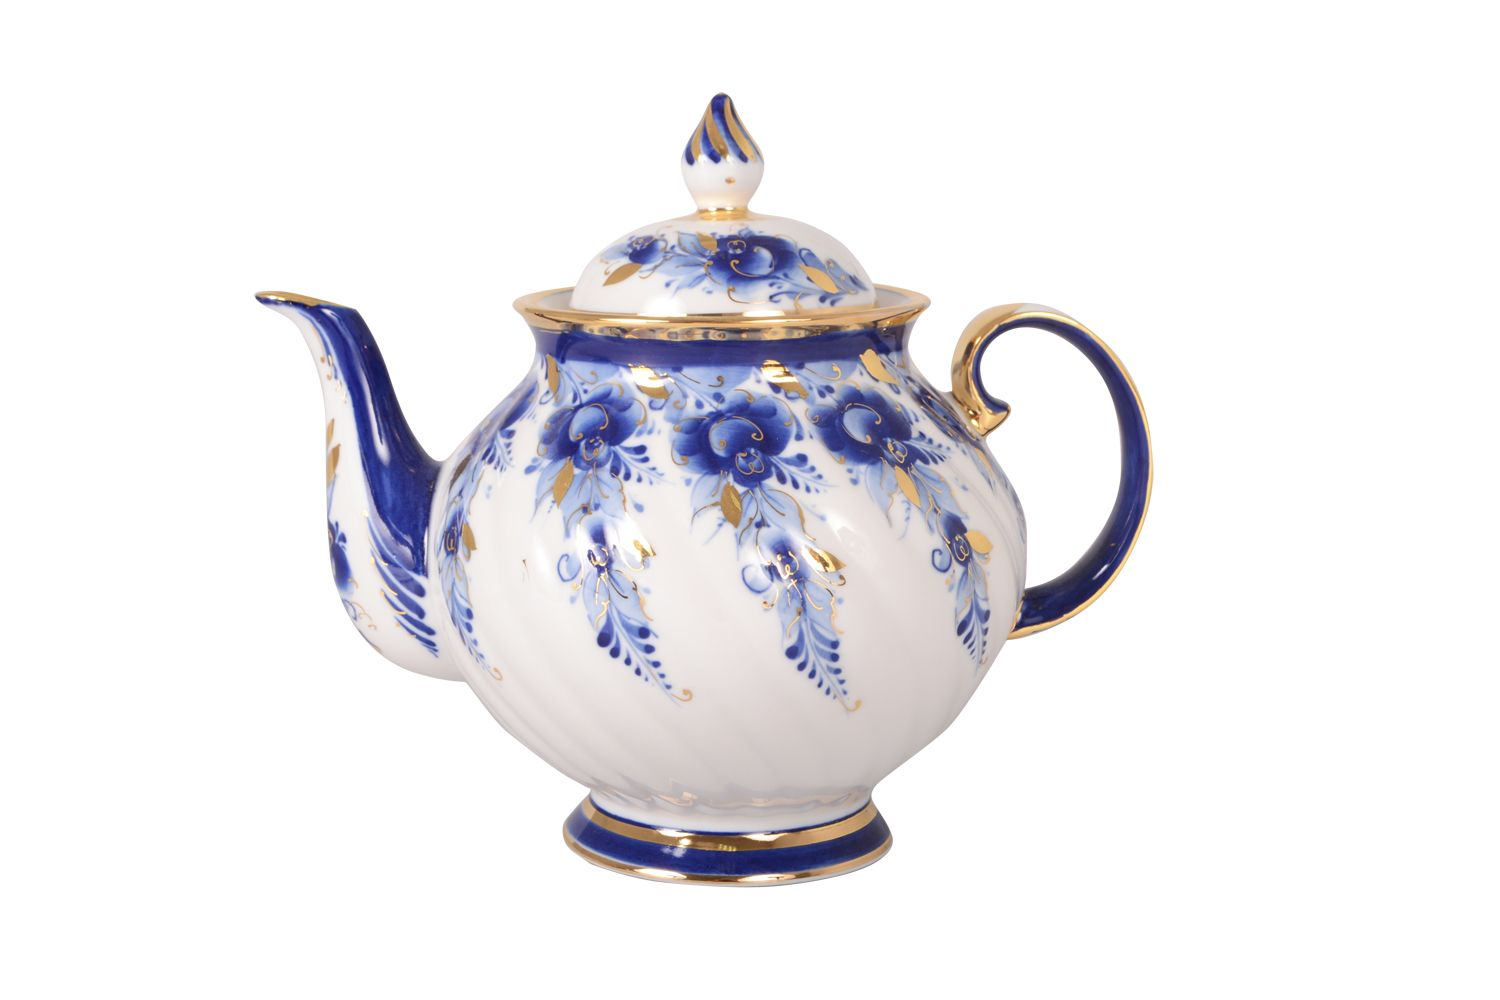 Dulevo porcelain / Teapot 1200 ml Blue Rose Gold